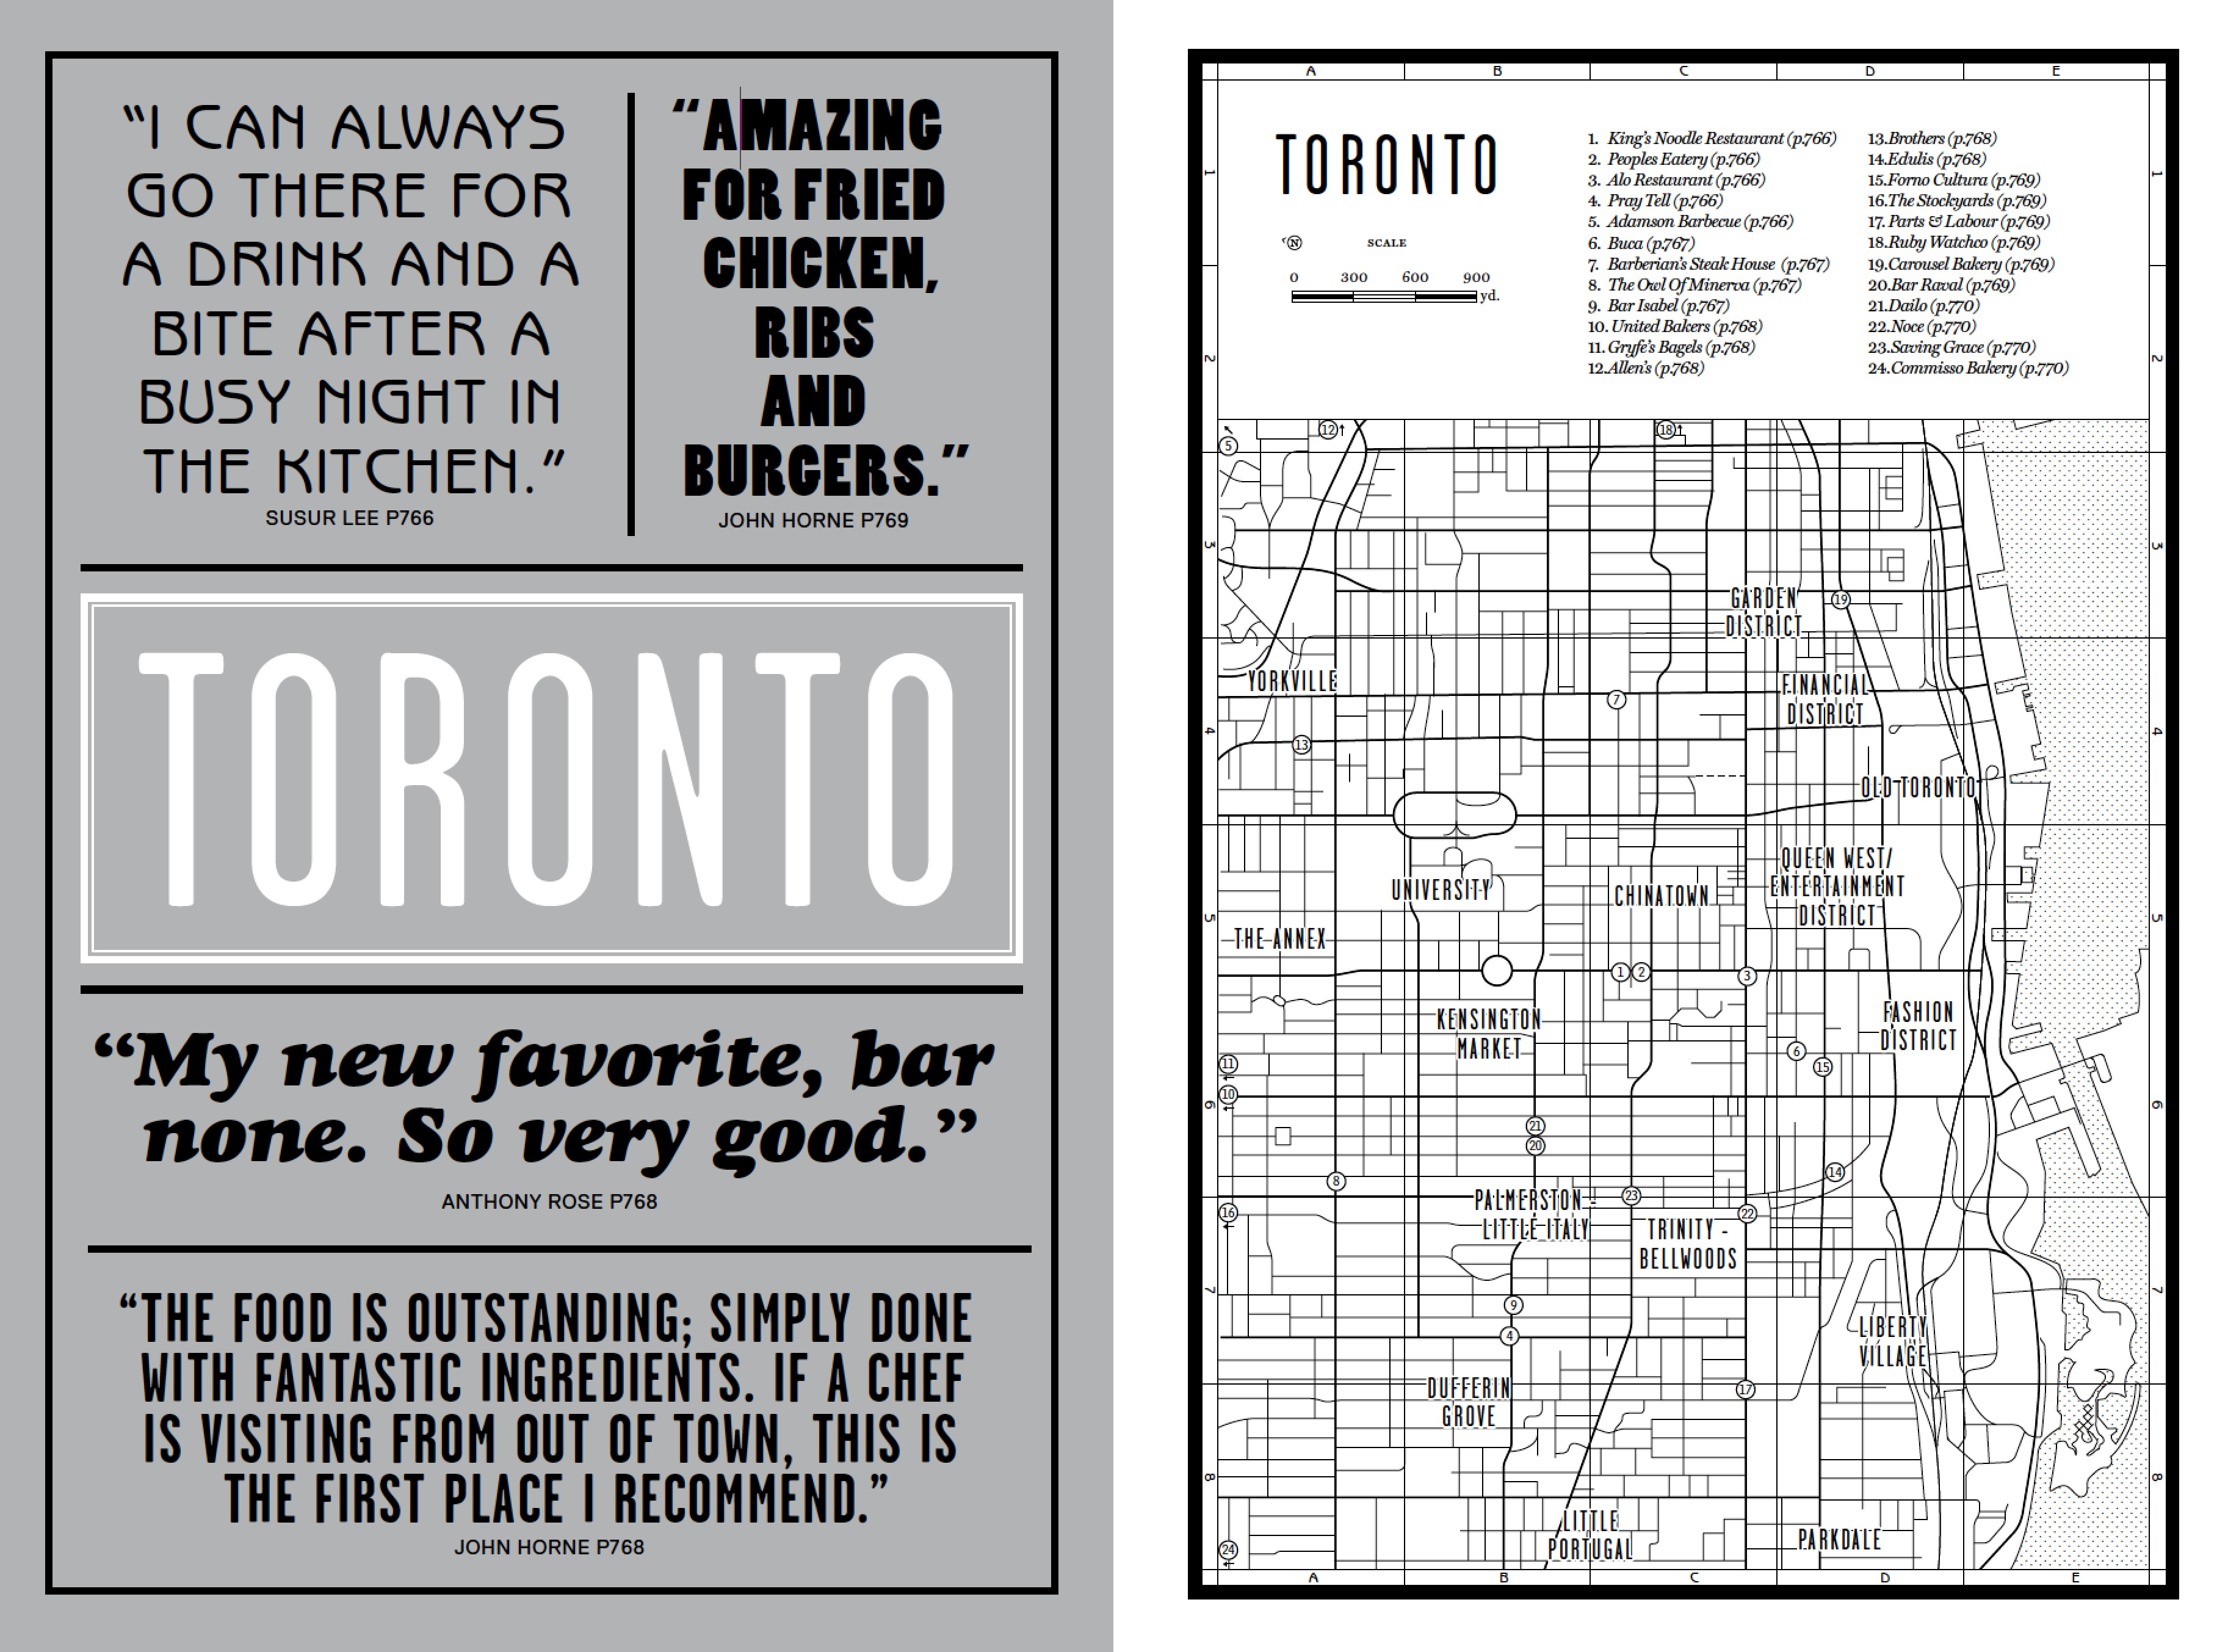 The Toronto introduction from our new book Where Chefs Eat